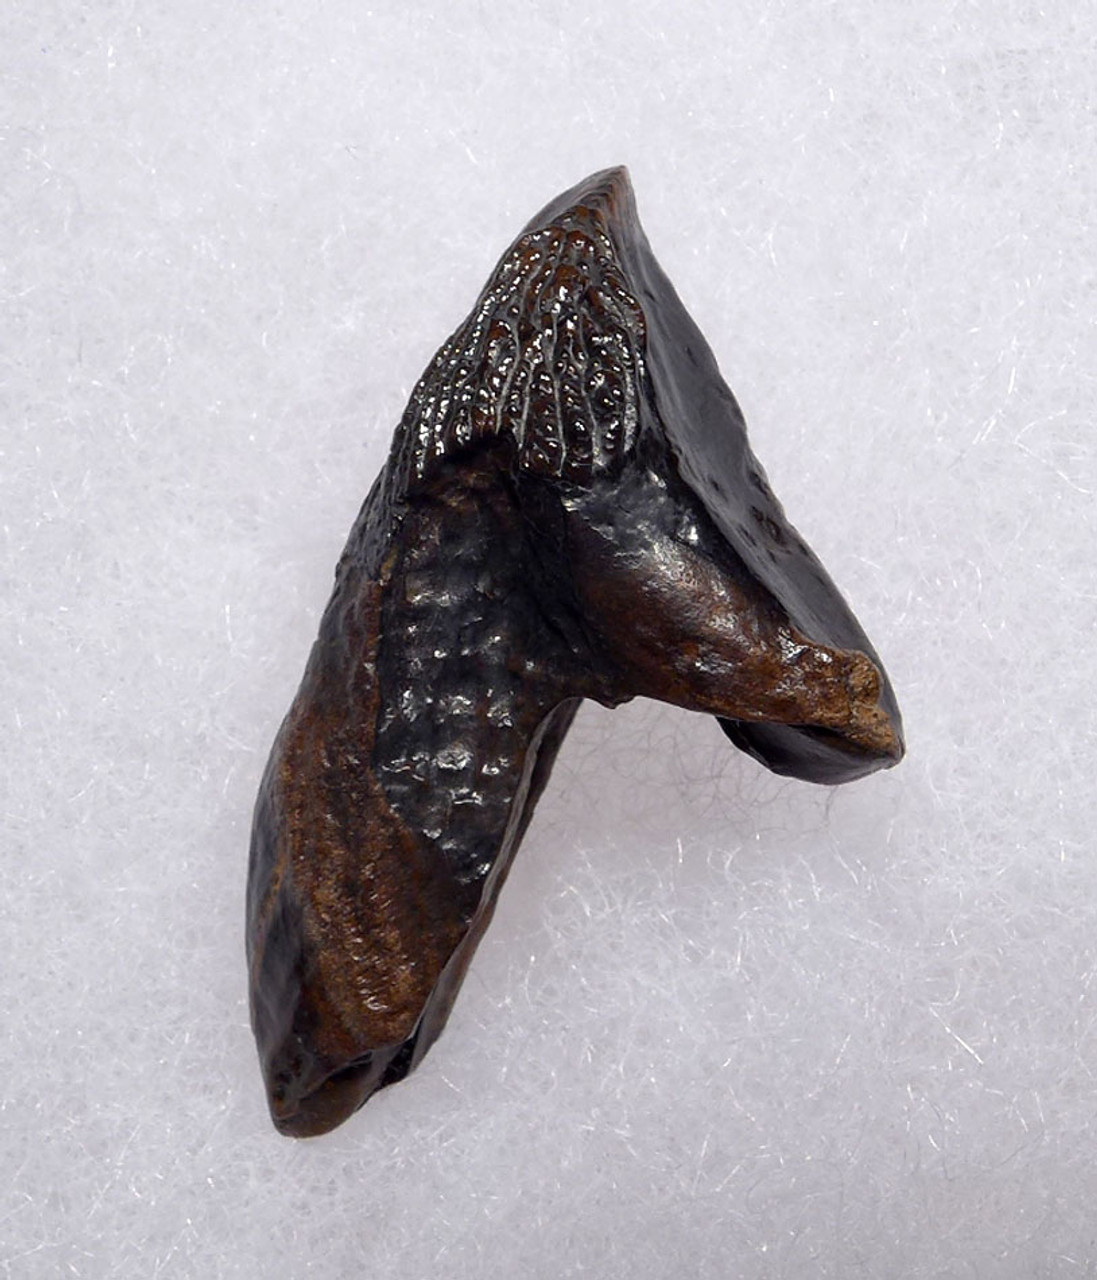 FINEST LARGE TRICERATOPS DINOSAUR TOOTH WITH UNWORN CROWN AND ROOT  *DT19-047